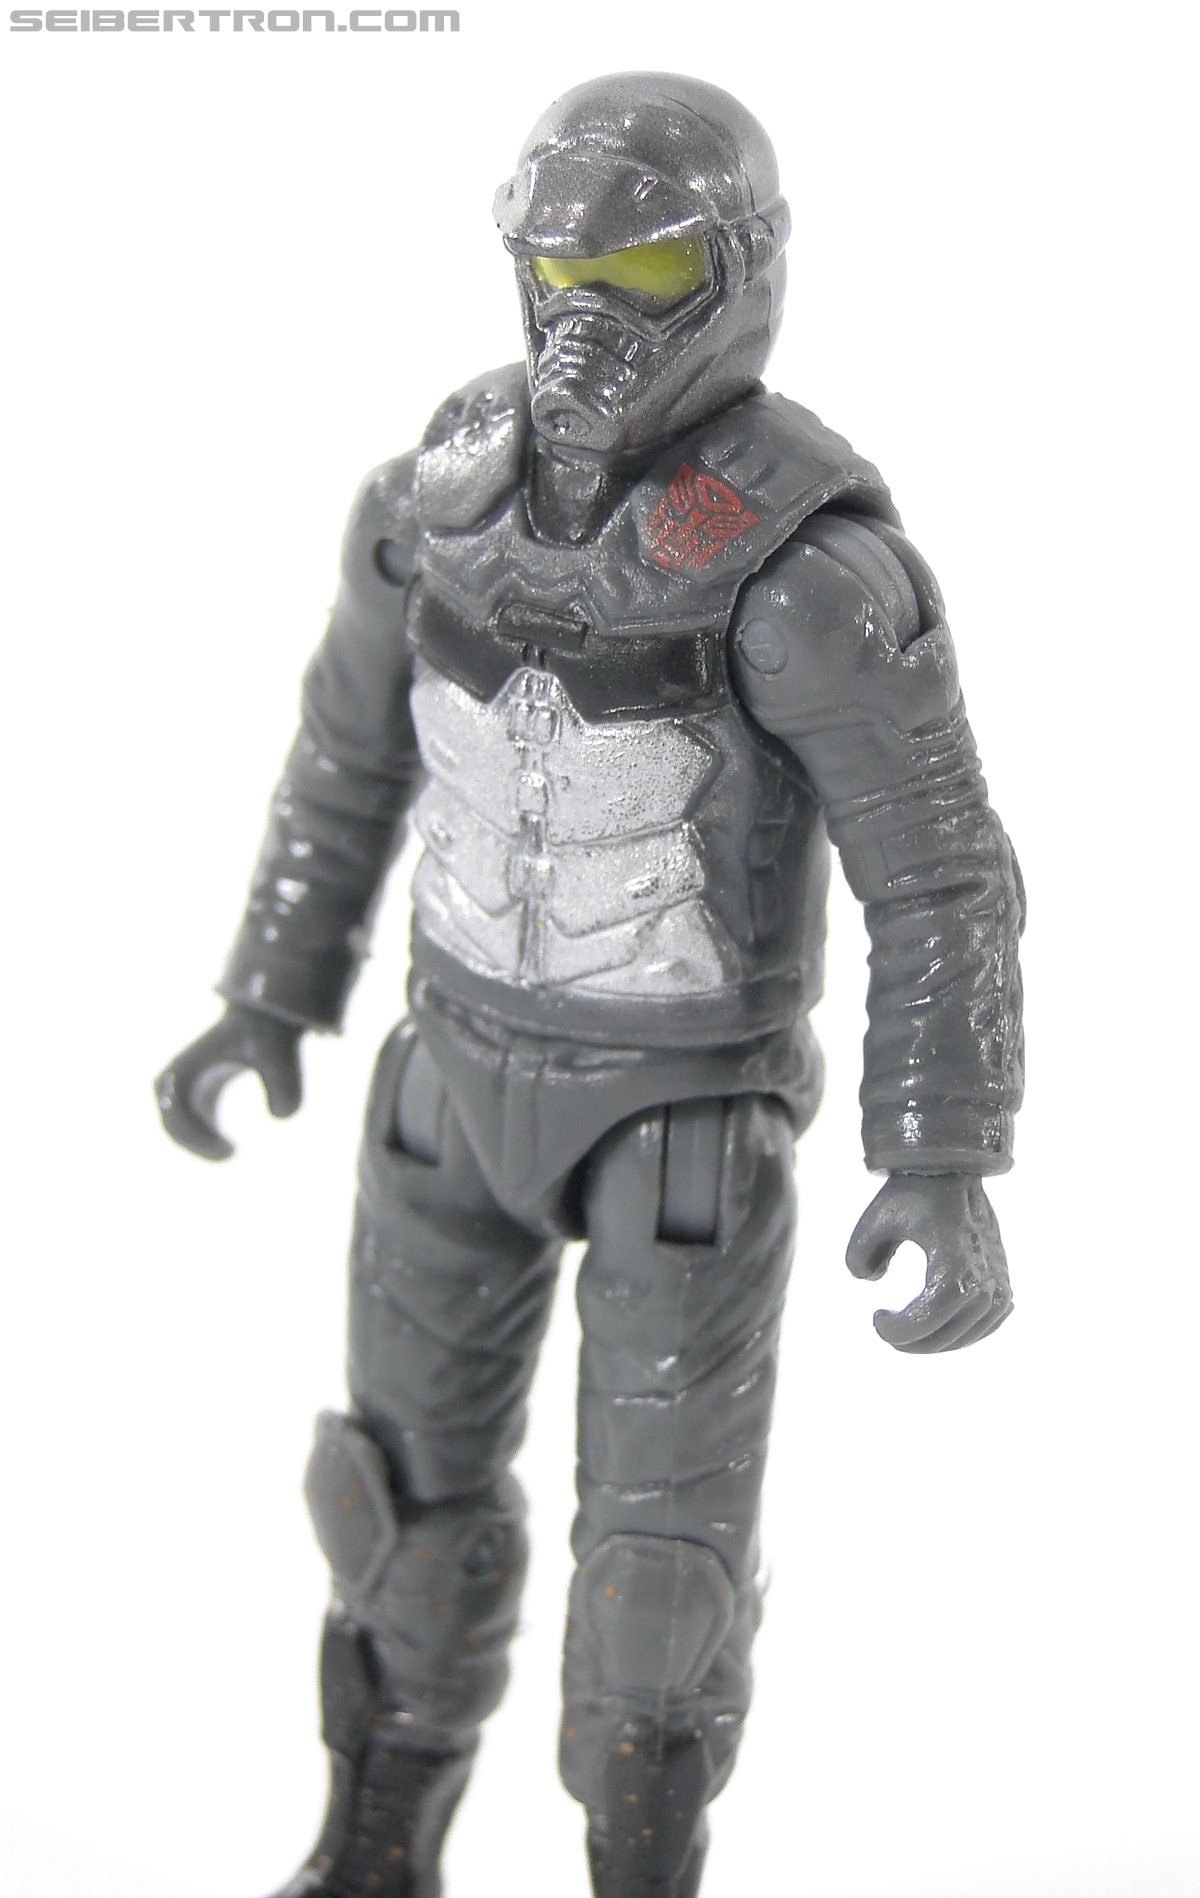 Transformers Dark of the Moon Spike Witwicky (Image #17 of 70)